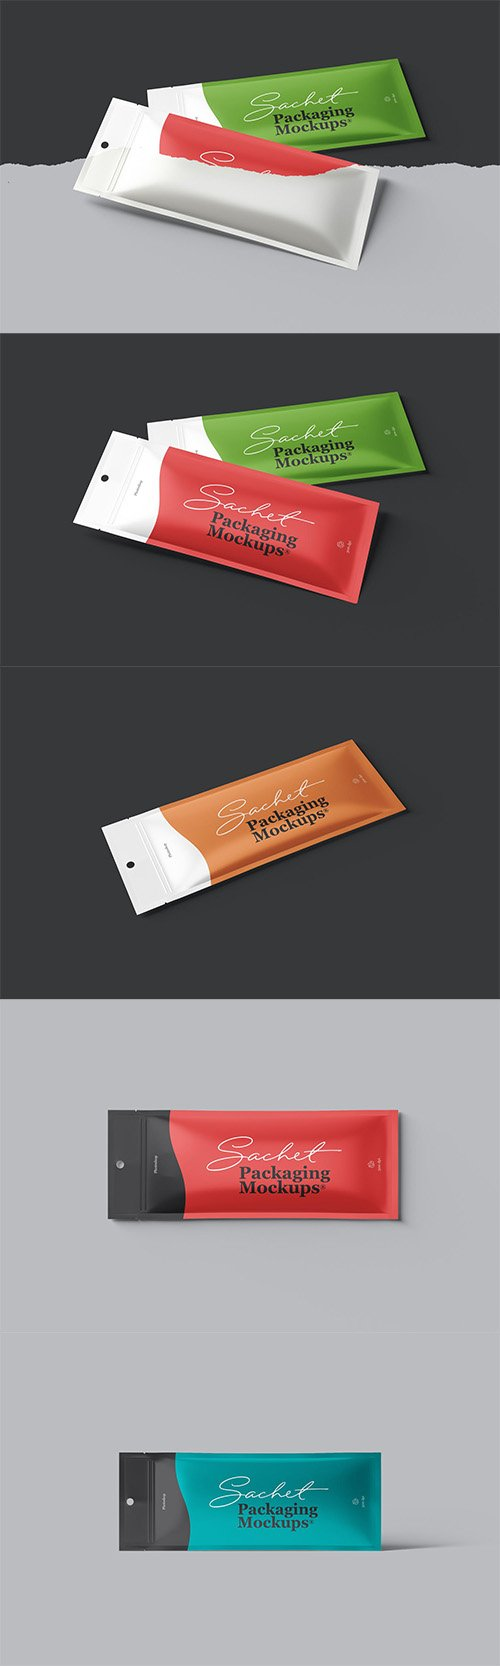 Sachet Packaging Mockups